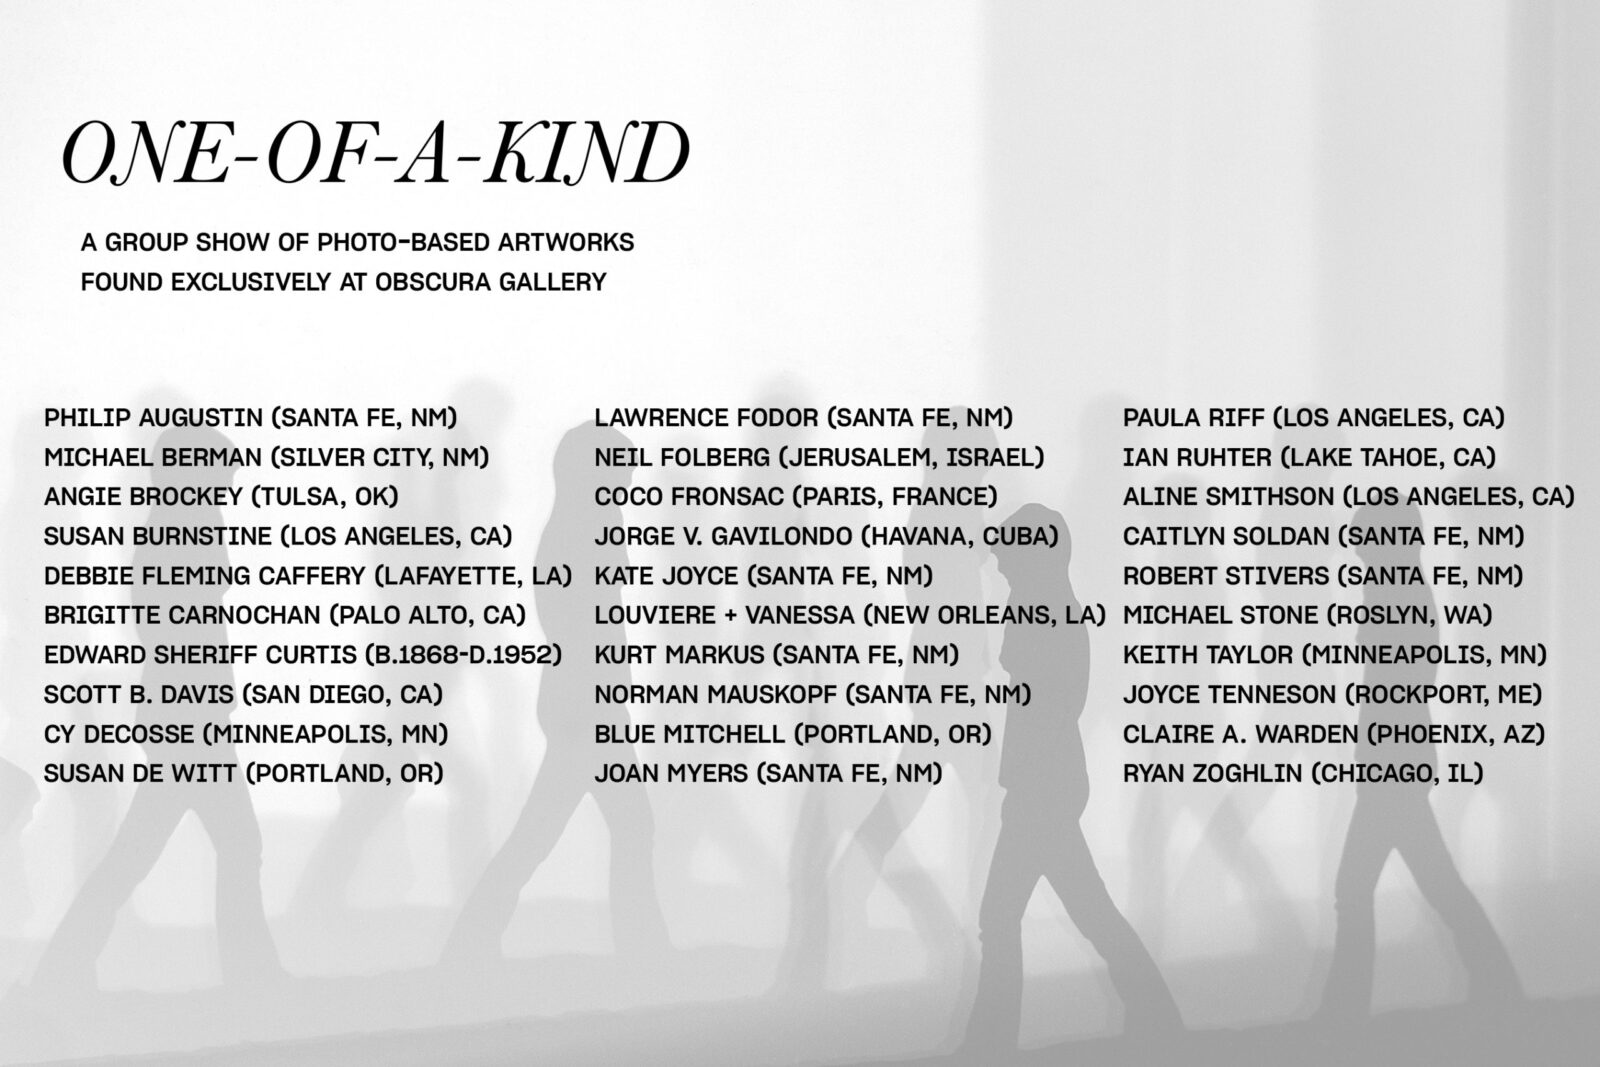 Image of list of artists for one of a kind show.